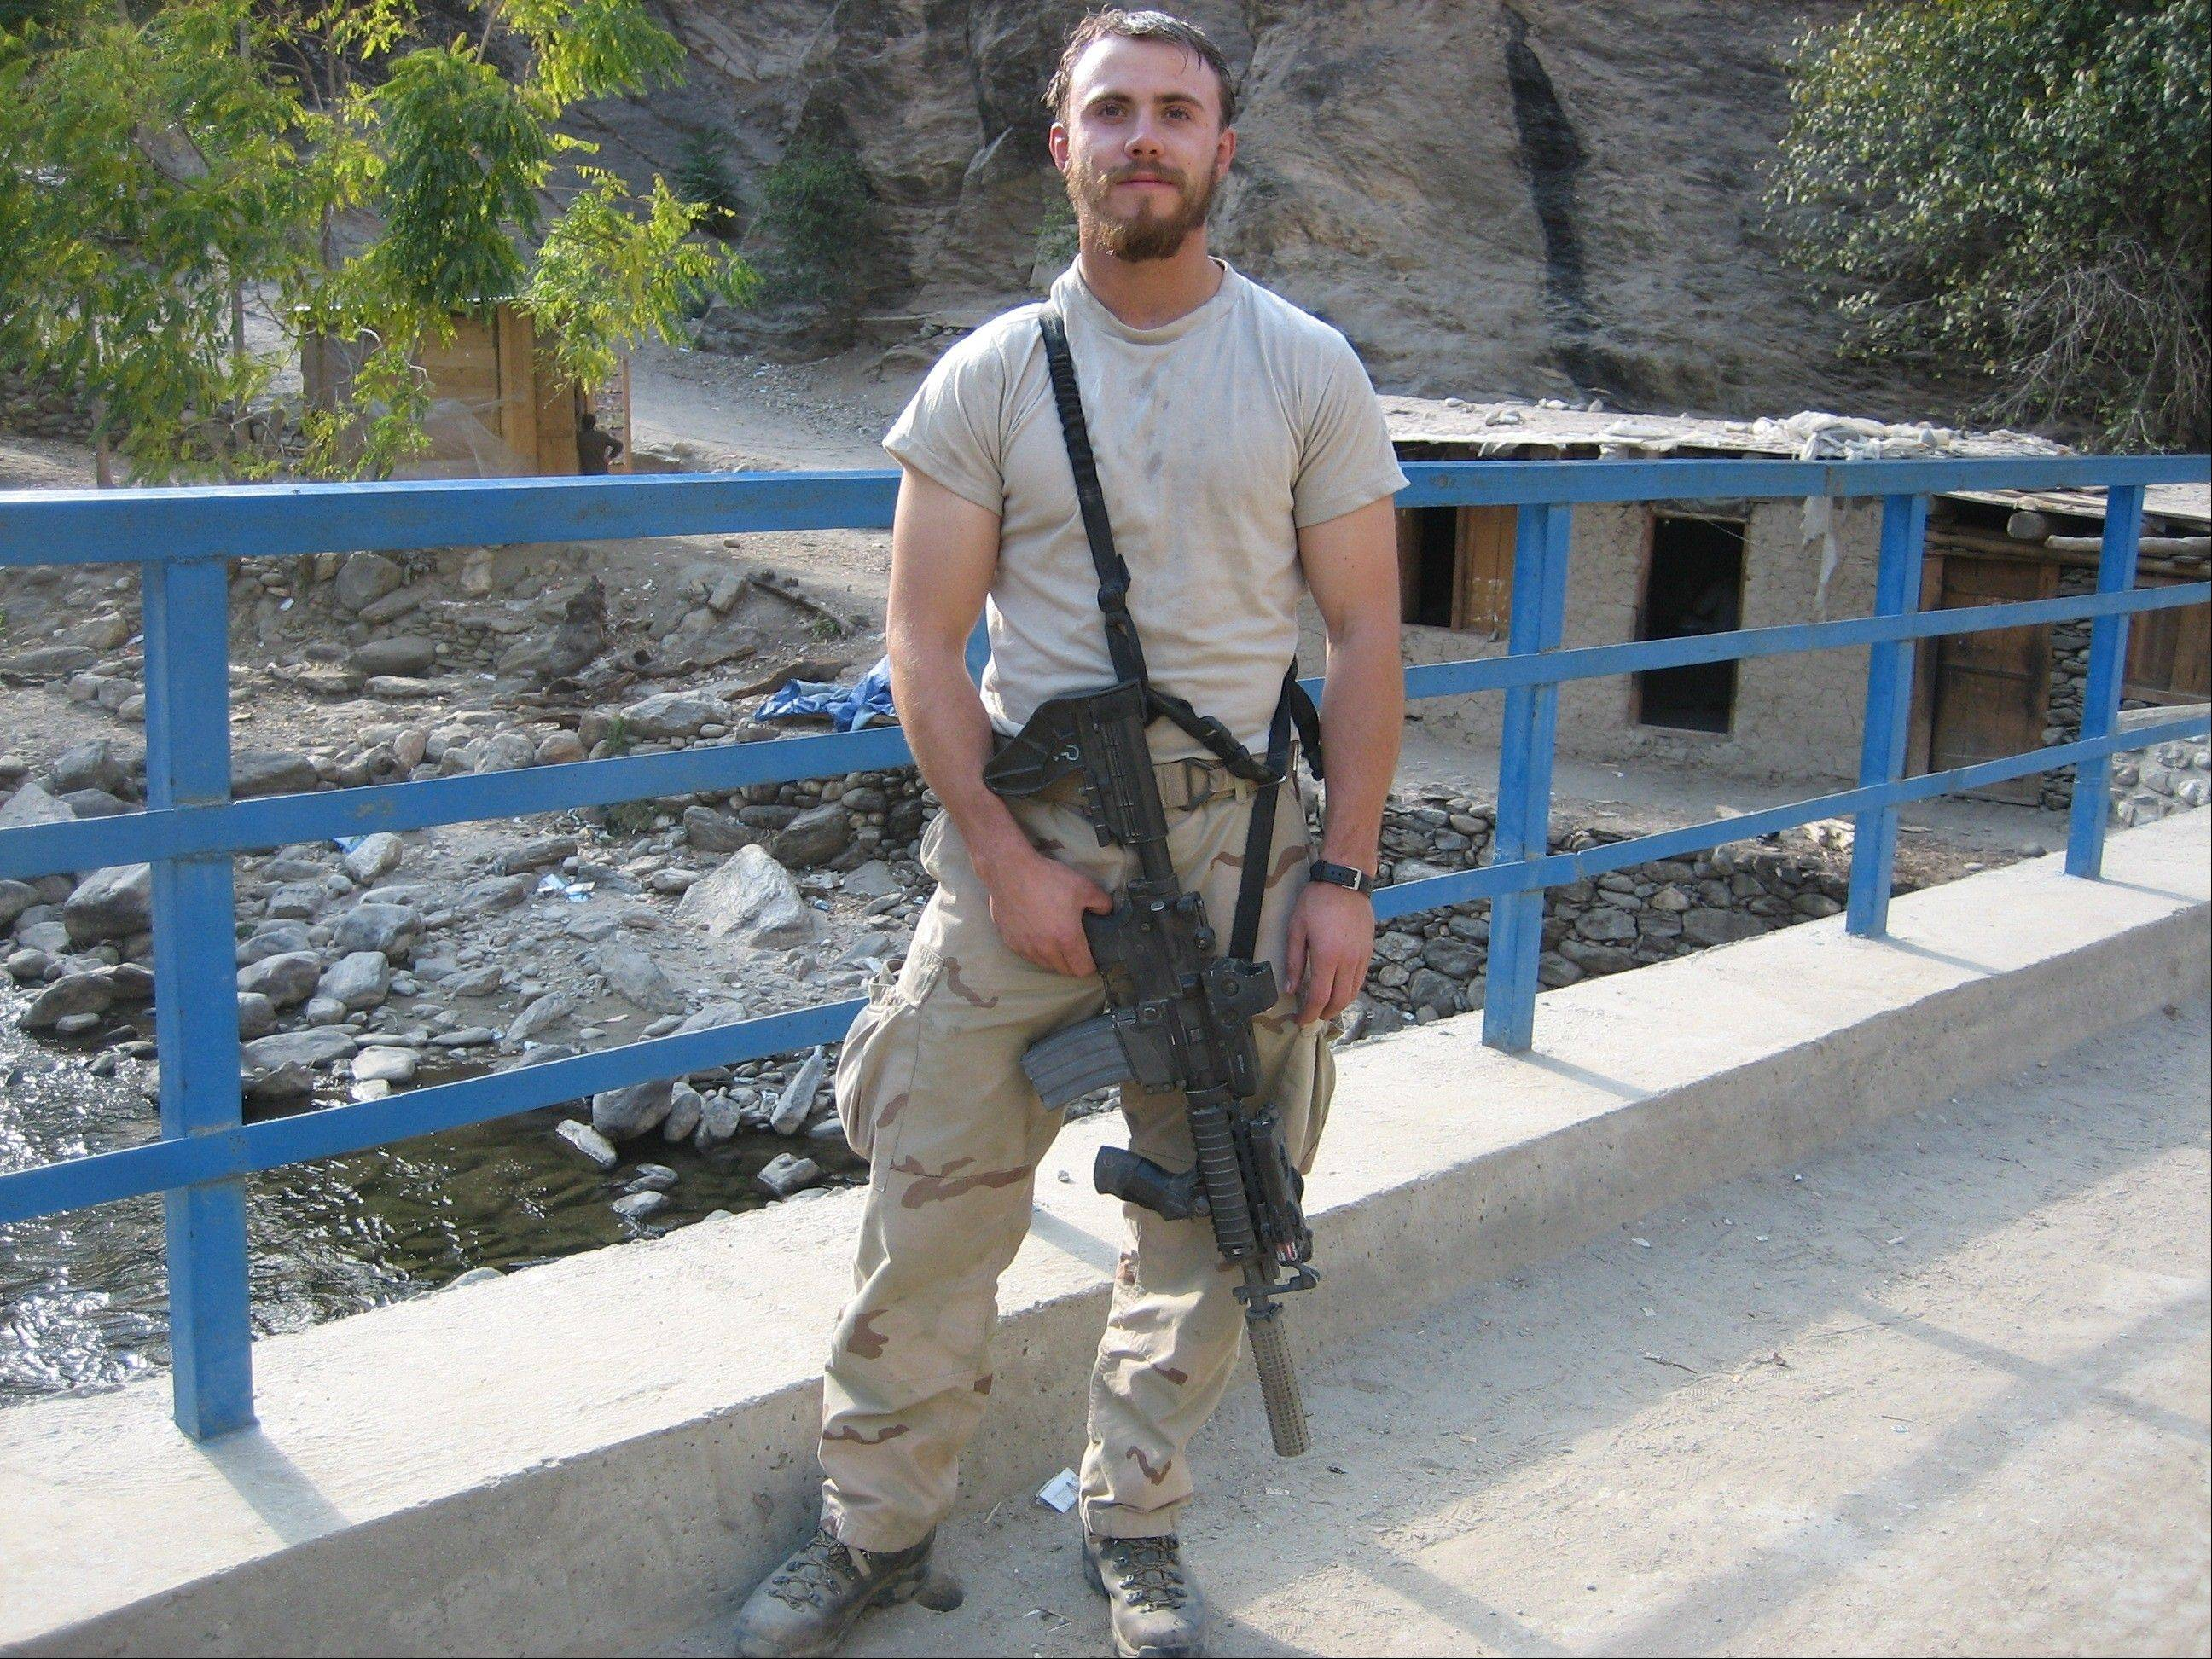 The commons area of Wheaton North High School will be renamed the Robert J. Miller Commons Area, after the Wheaton native, shown here in Afghanistan, who died in battle there in 2008. He was awarded the Medal of Honor last October.